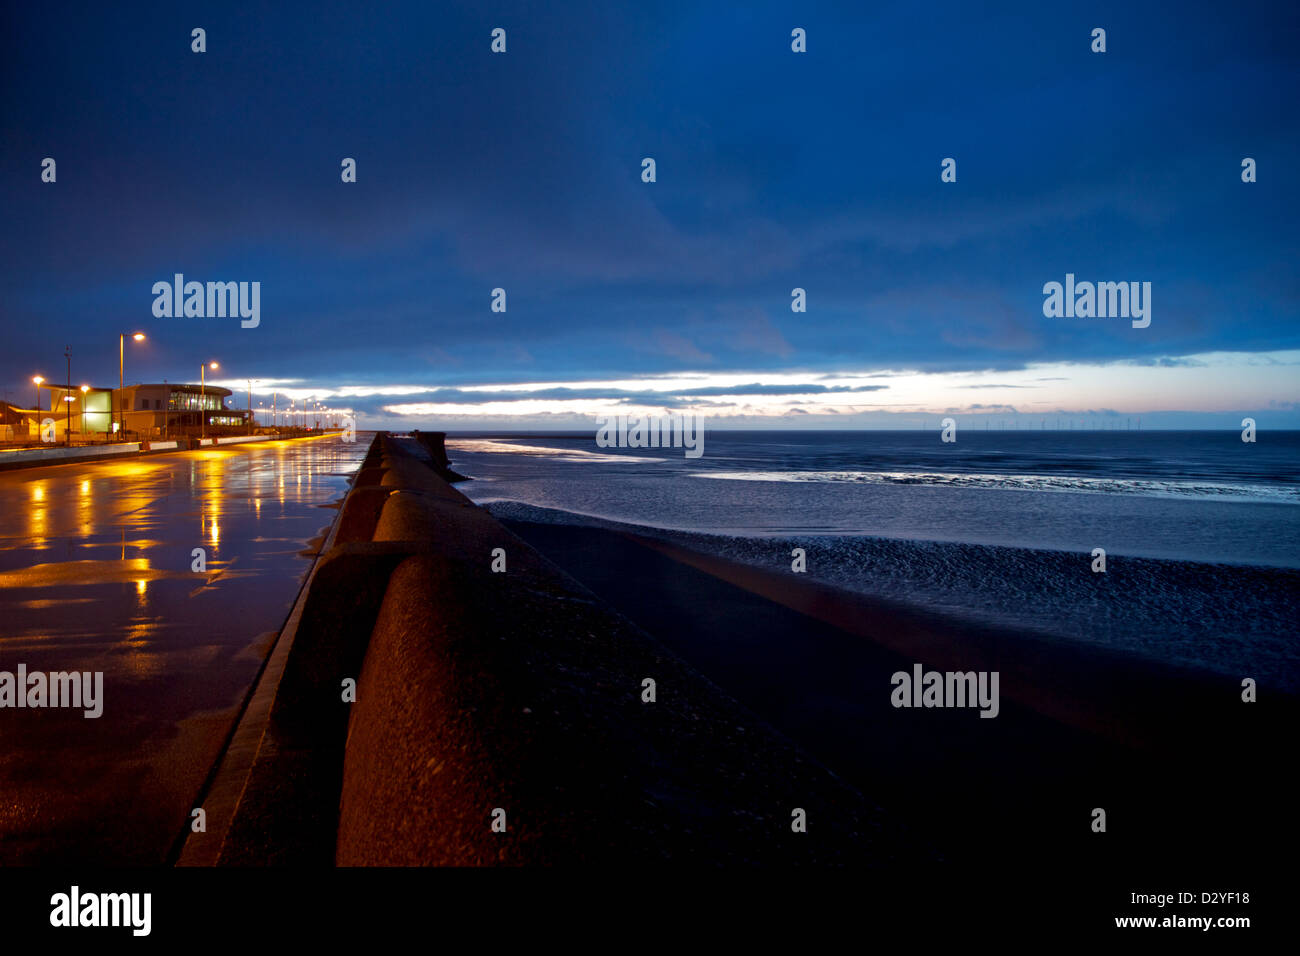 A series of low light coastal and urban landscapes taken at New Brighton, Wirral, Merseyside, England, UK. - Stock Image